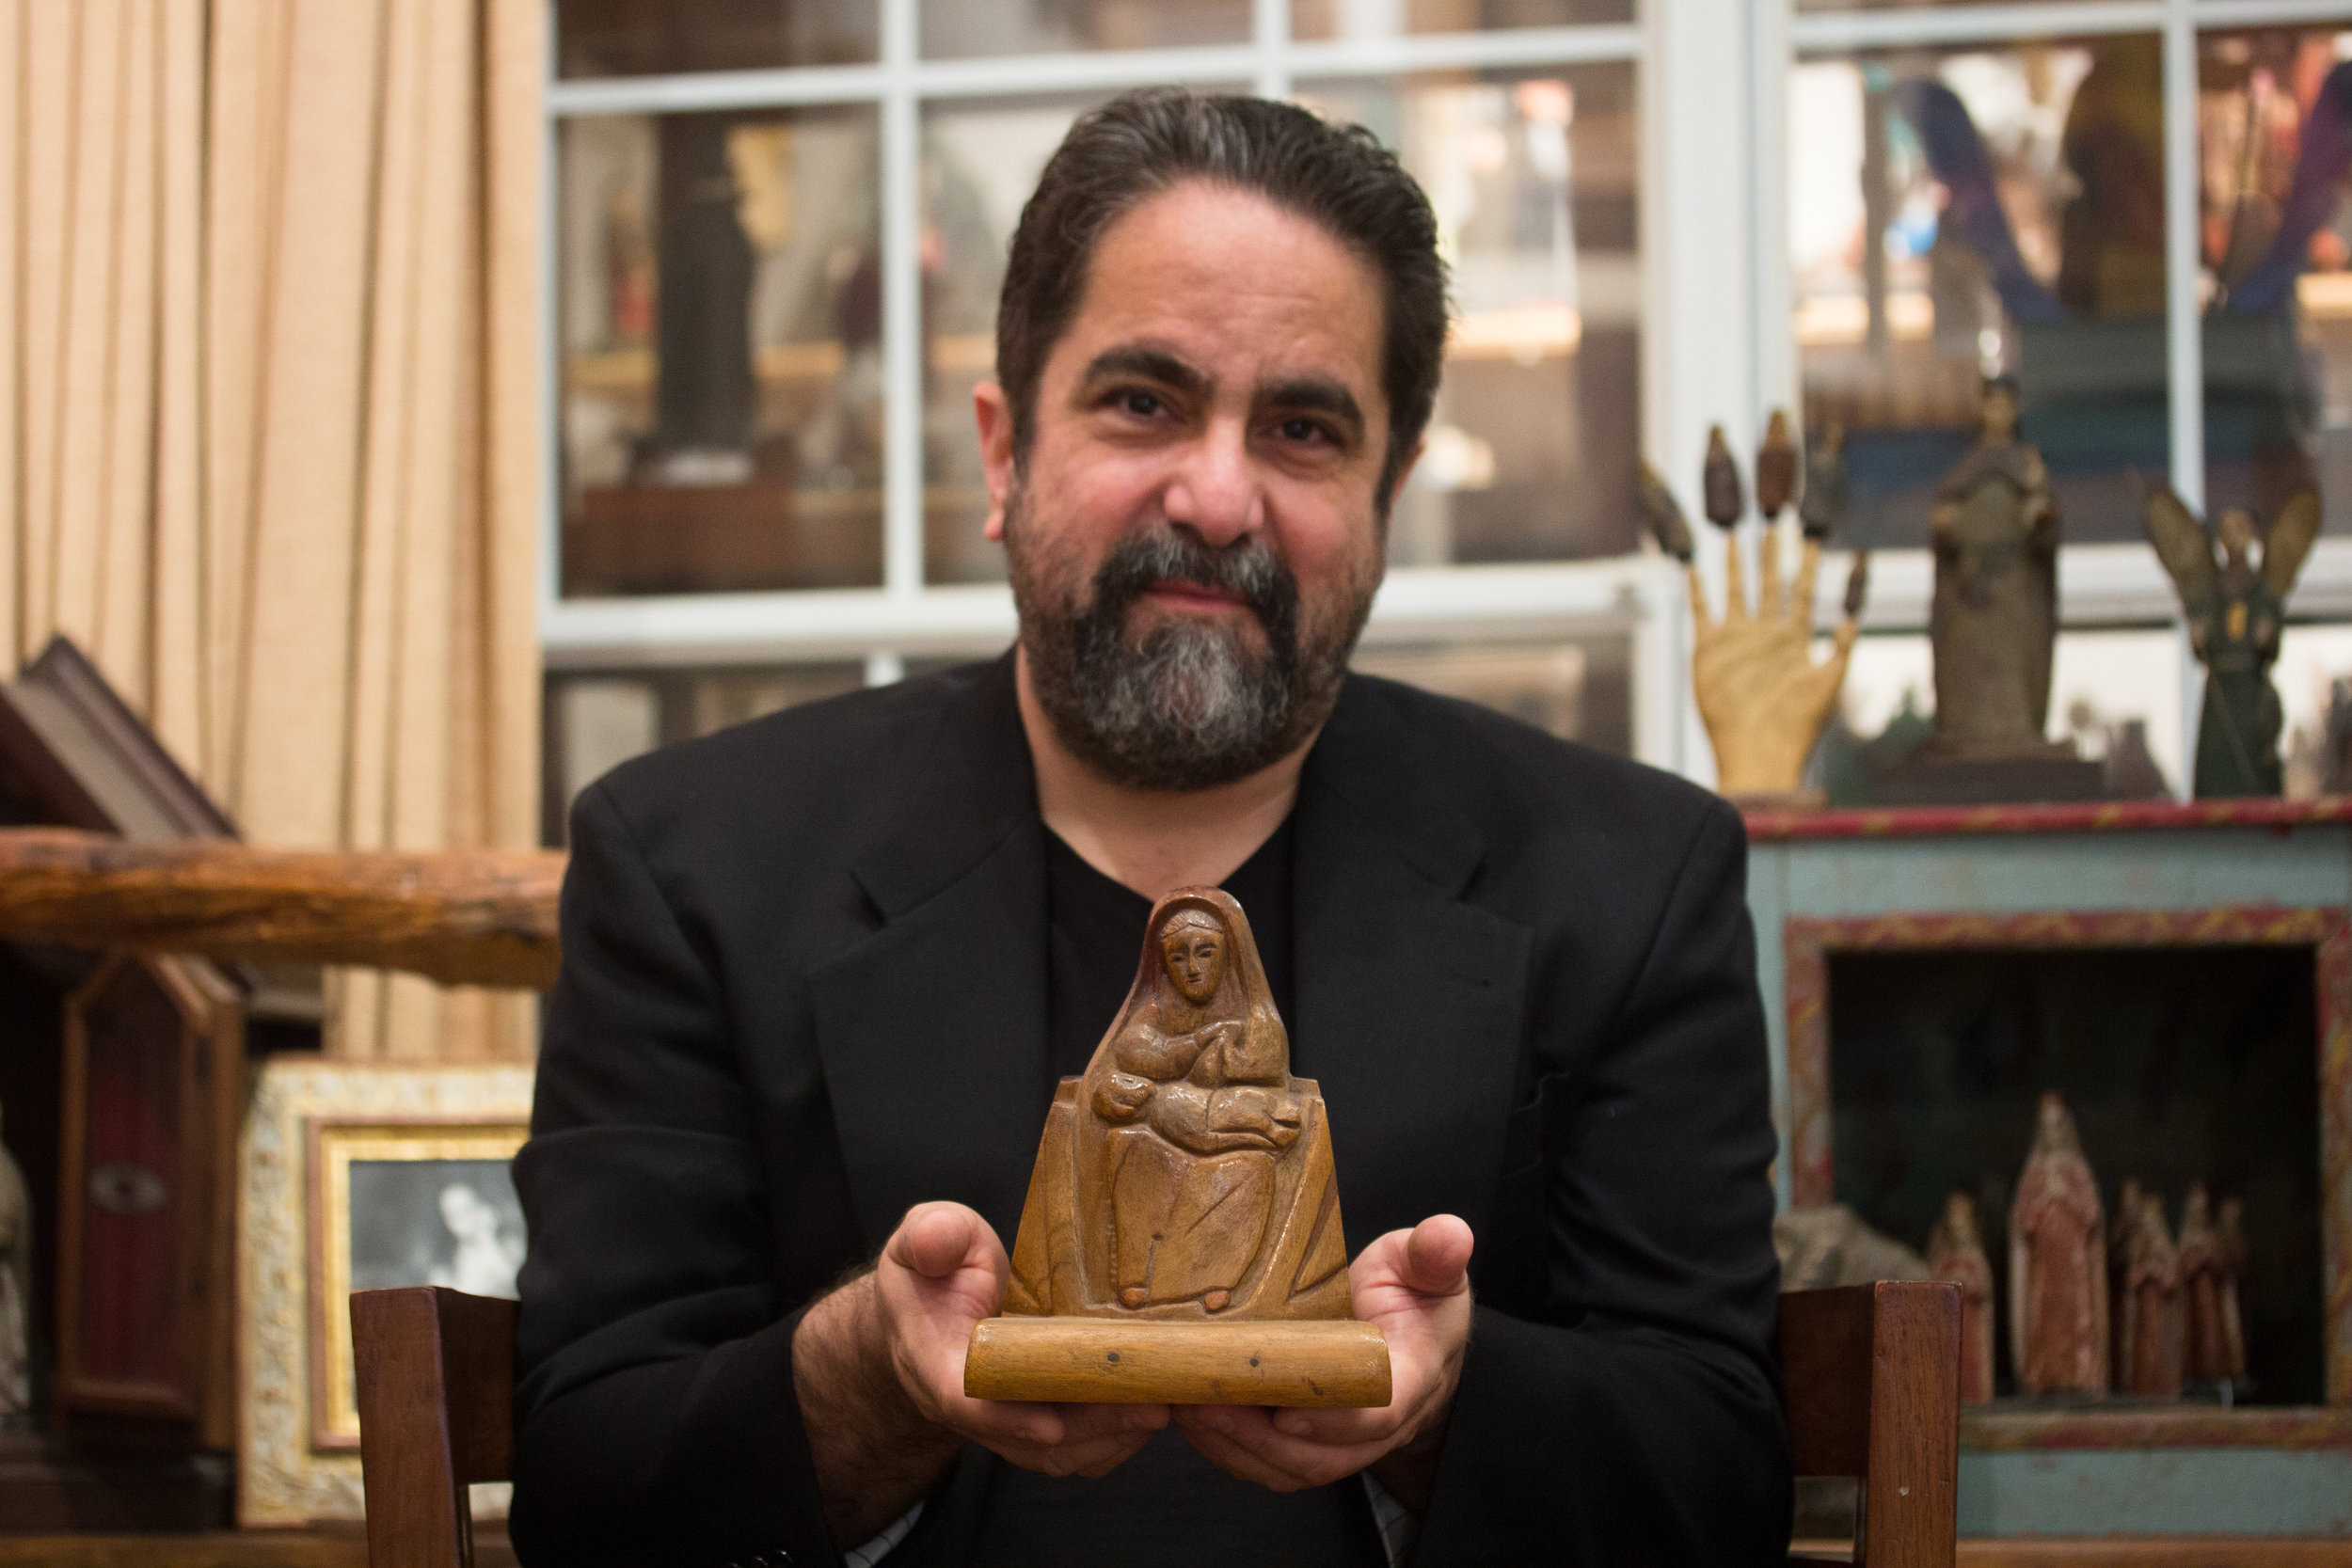 Hector Puig with Virgin of Providence by Ceferino, Photo: Mateo Puig Acosta